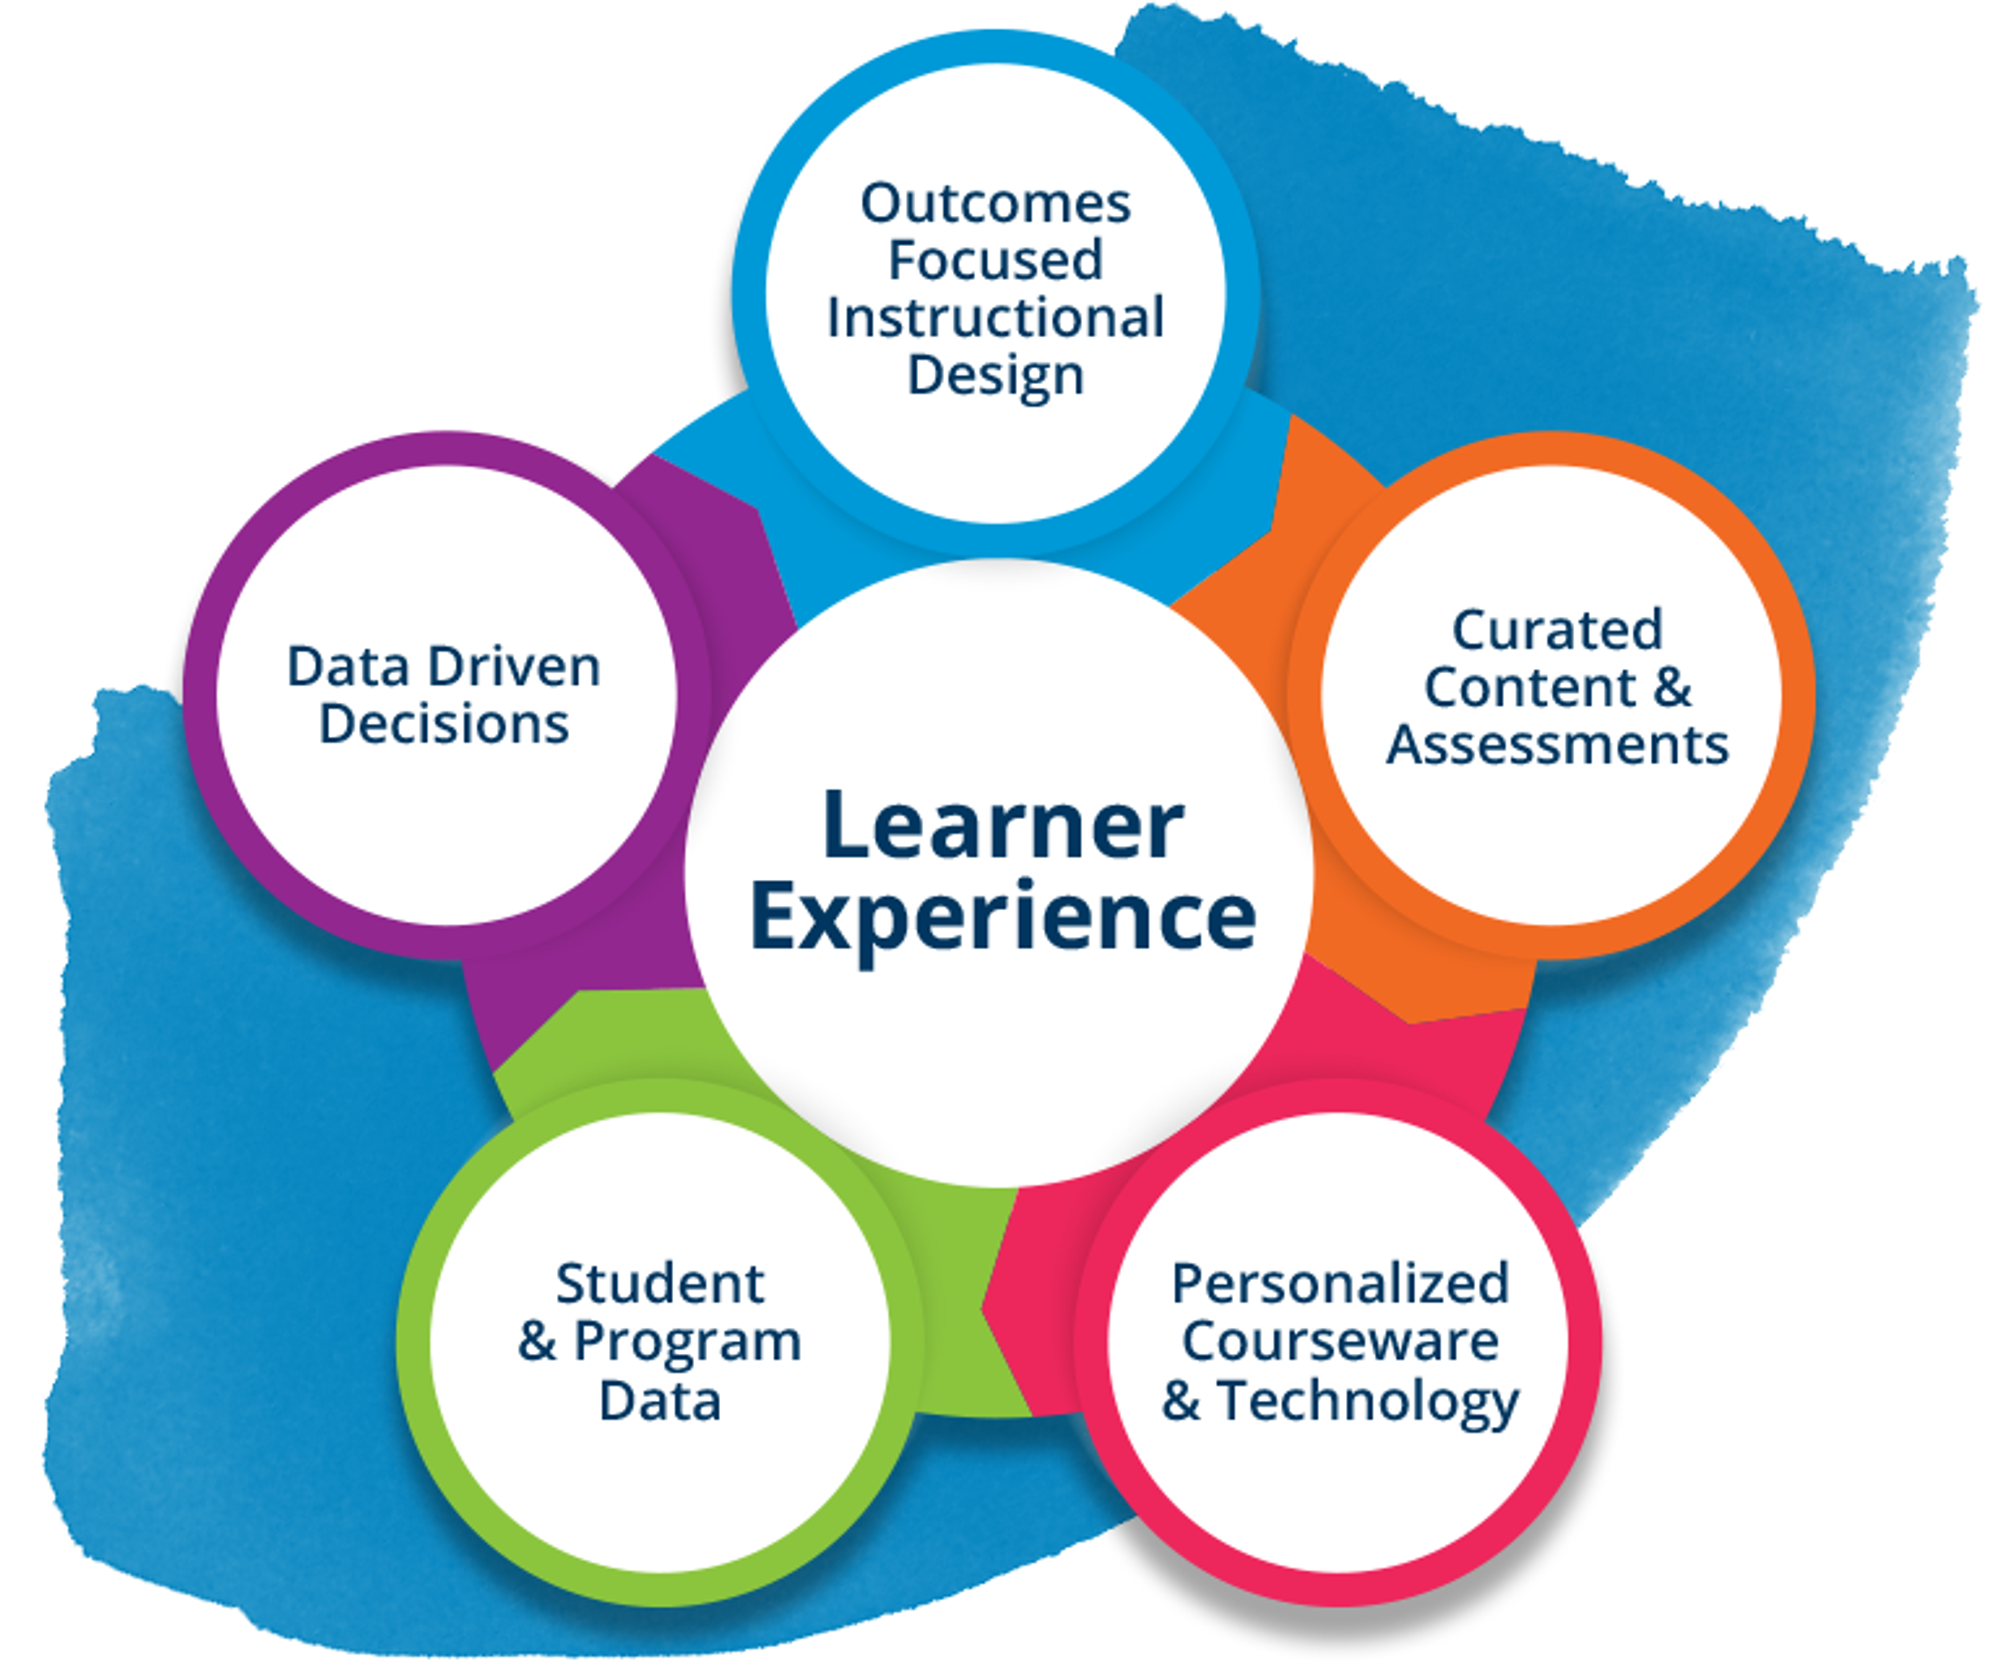 Learner Experience: Curated Content & Assessments; Personalized Courseware & Technology; Student & Program Data; Data Driven Decisions; Outcomes Focused Instructional Design